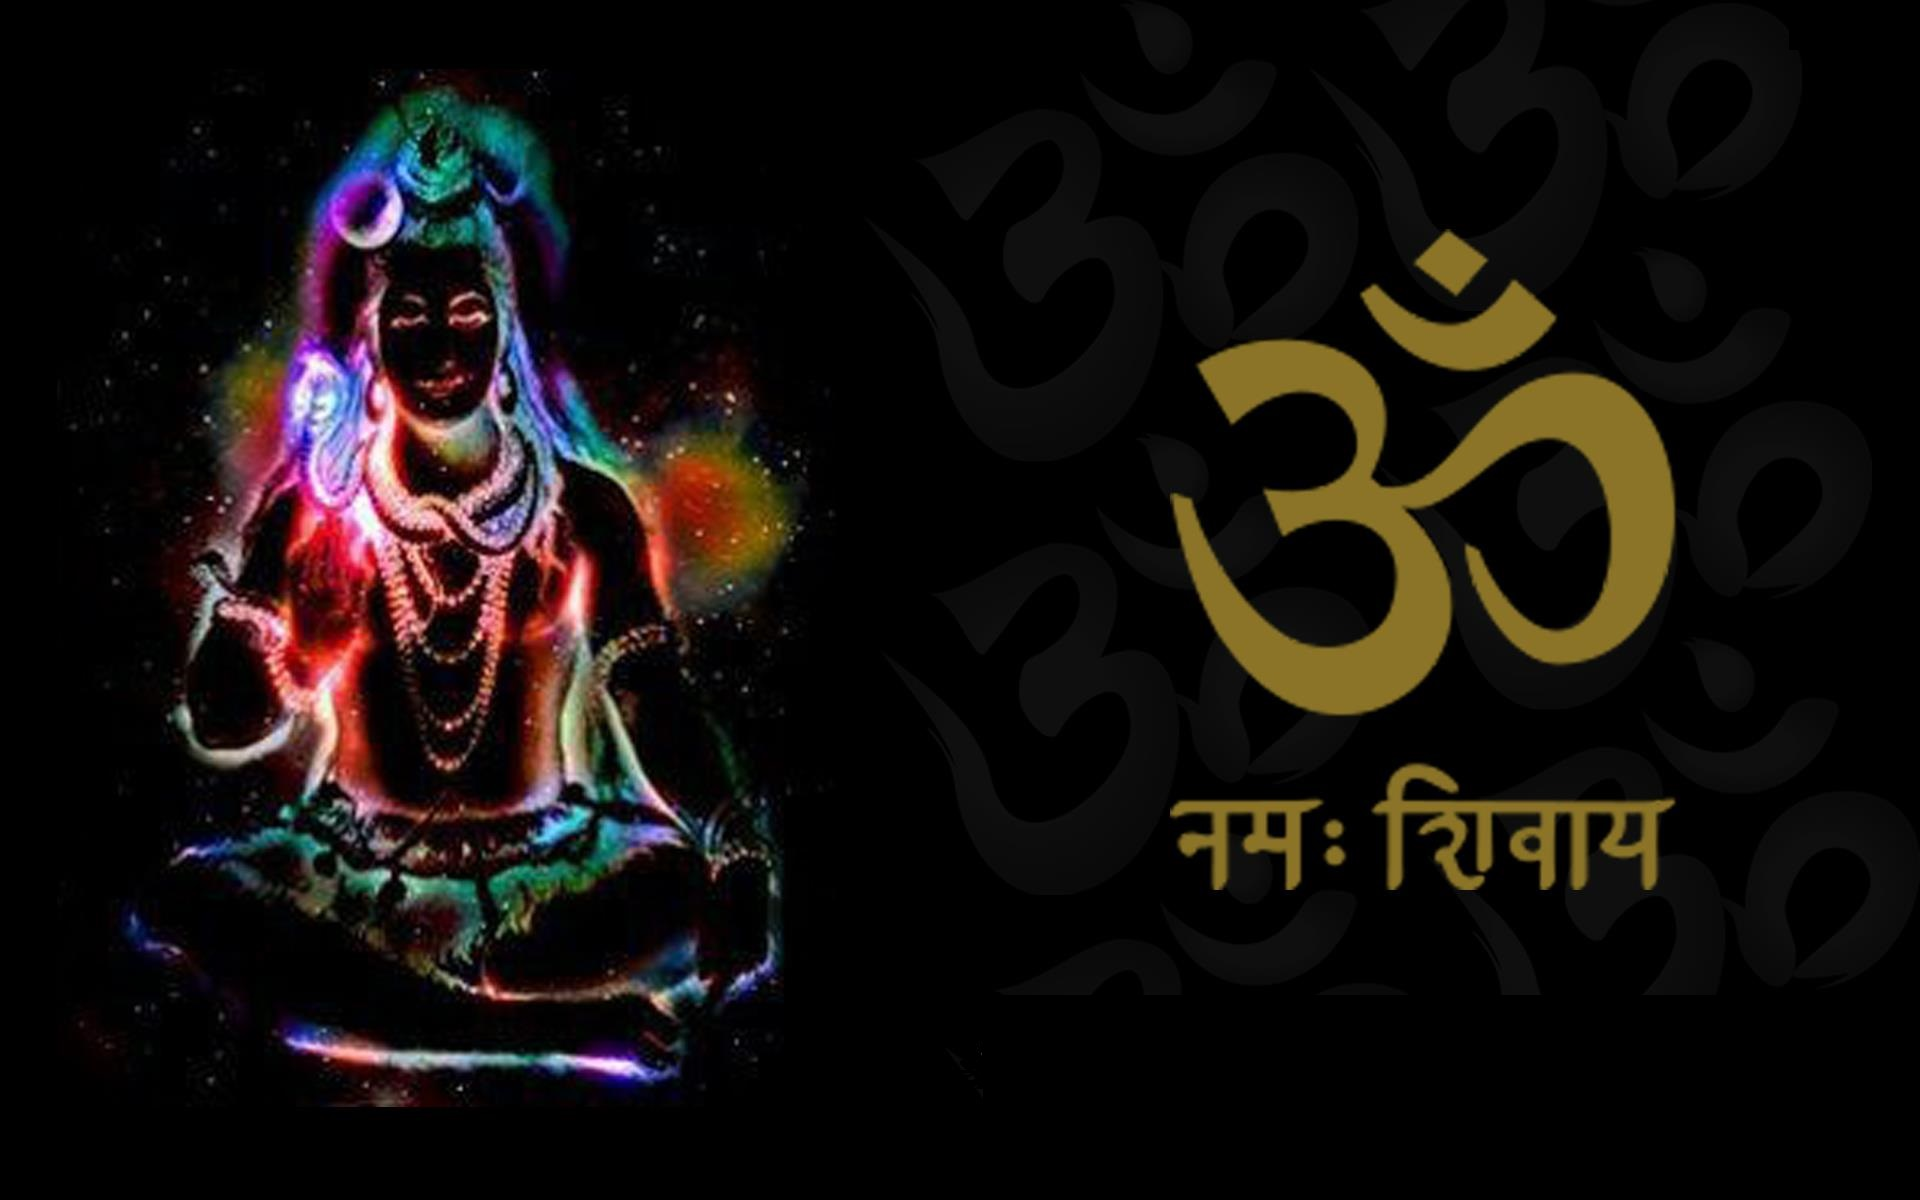 Desktop Wallpaper With Tamil Quotes Shiva Puja Vidhi Detailed Steps For Shiva Puja